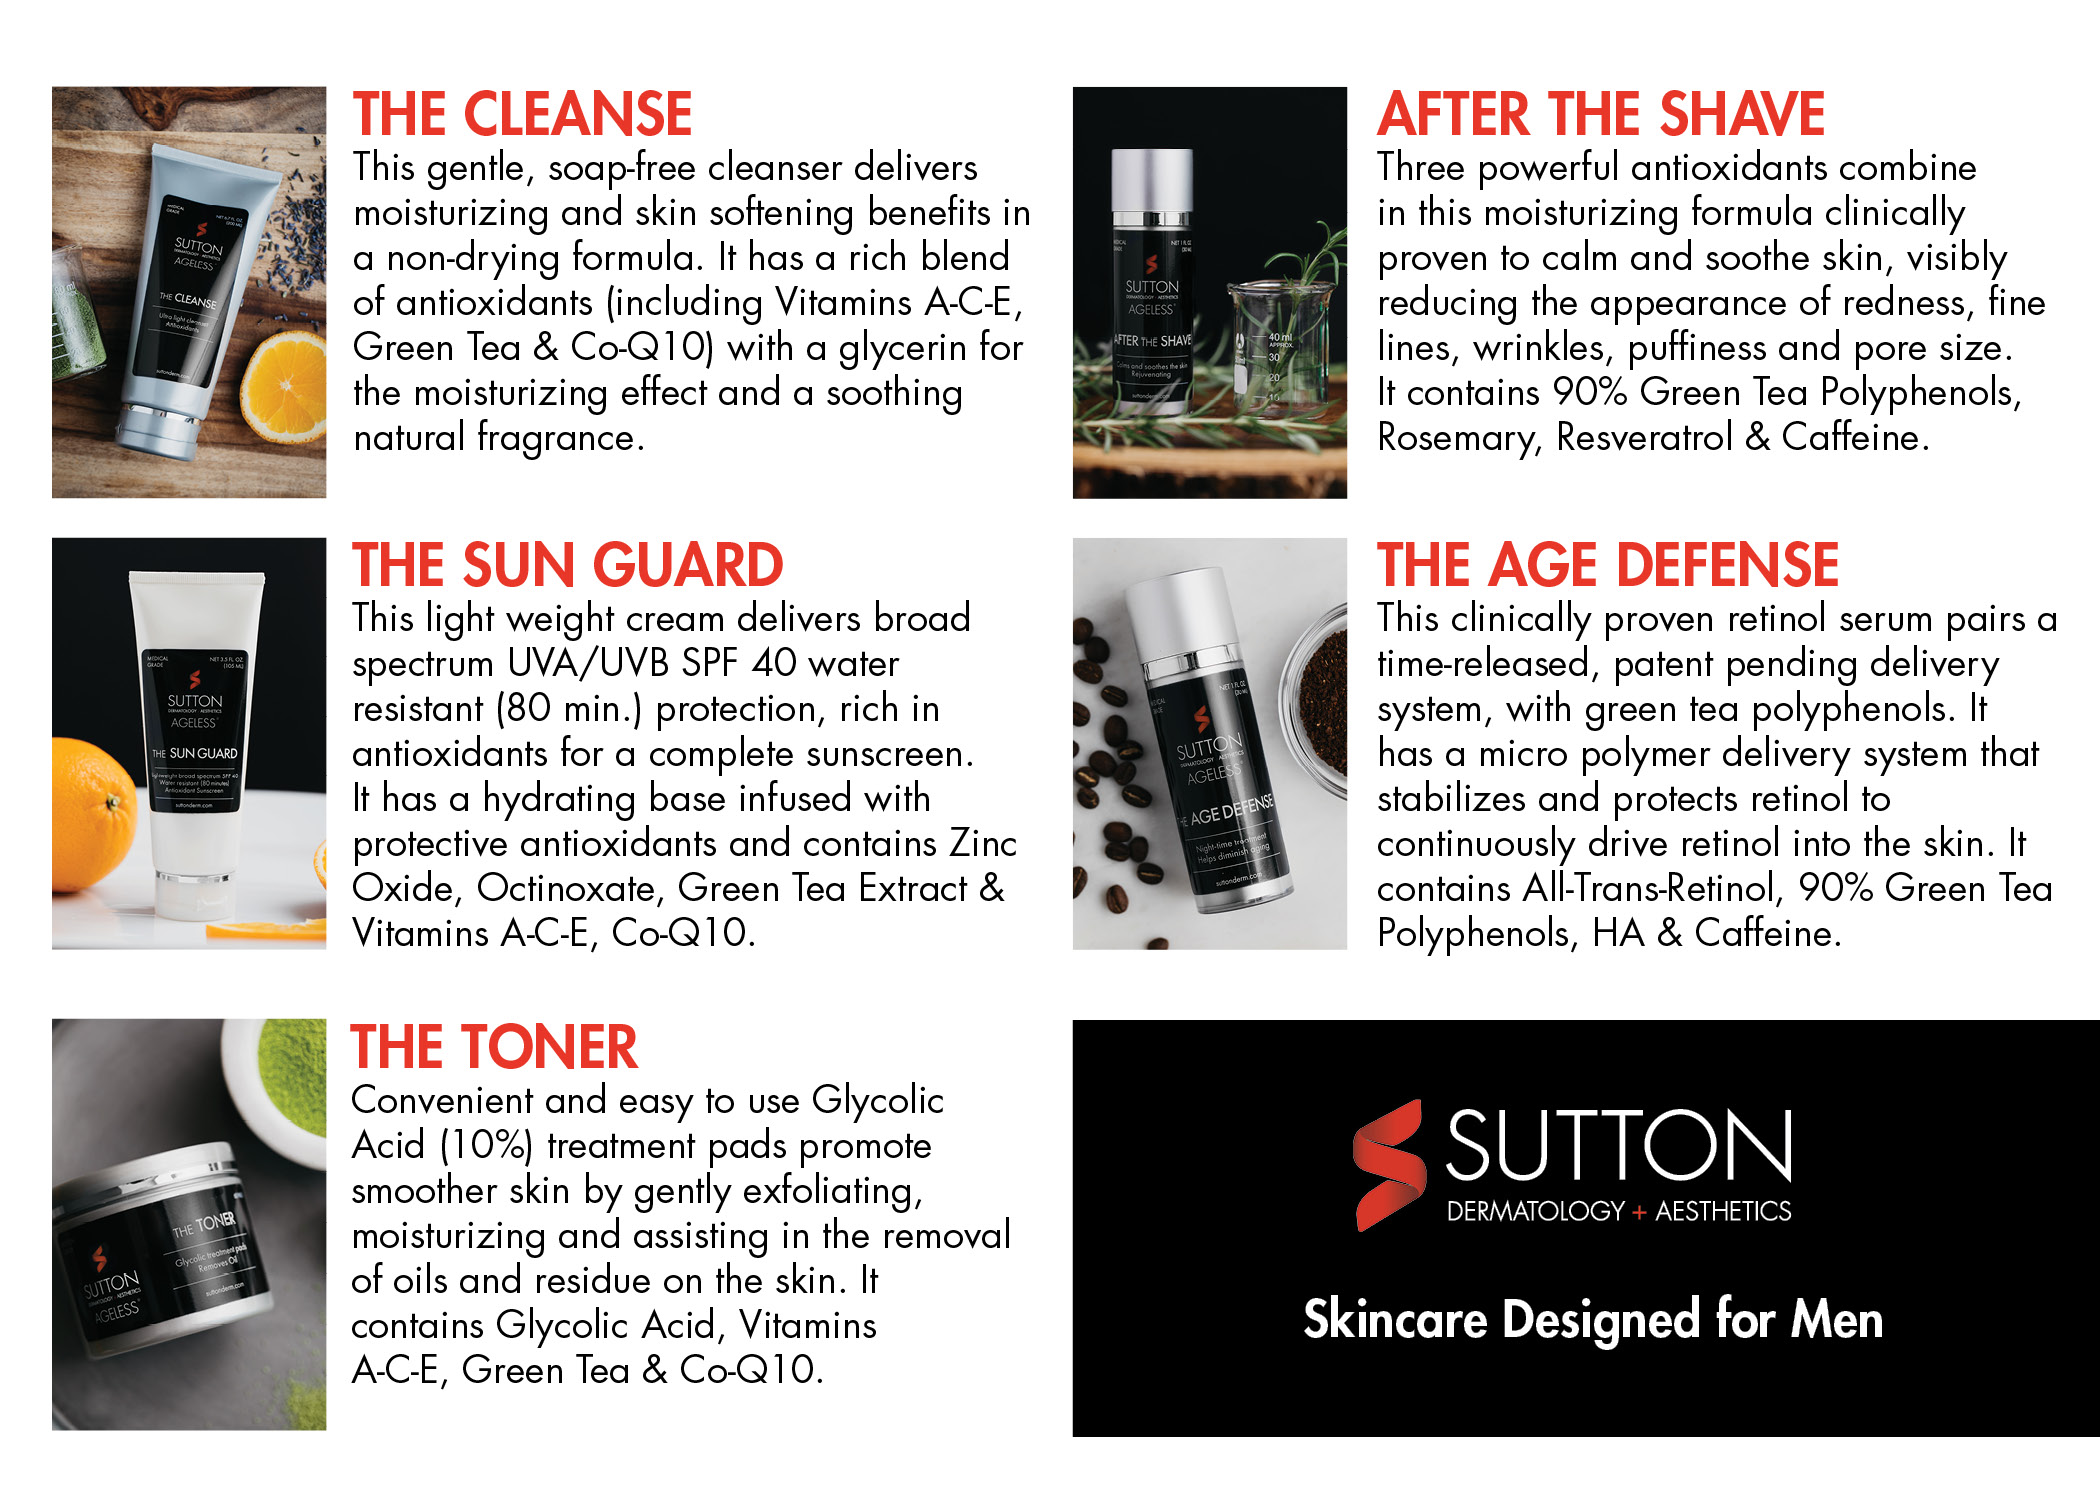 Sutton-Ageless_Mens-Line_Information-Card